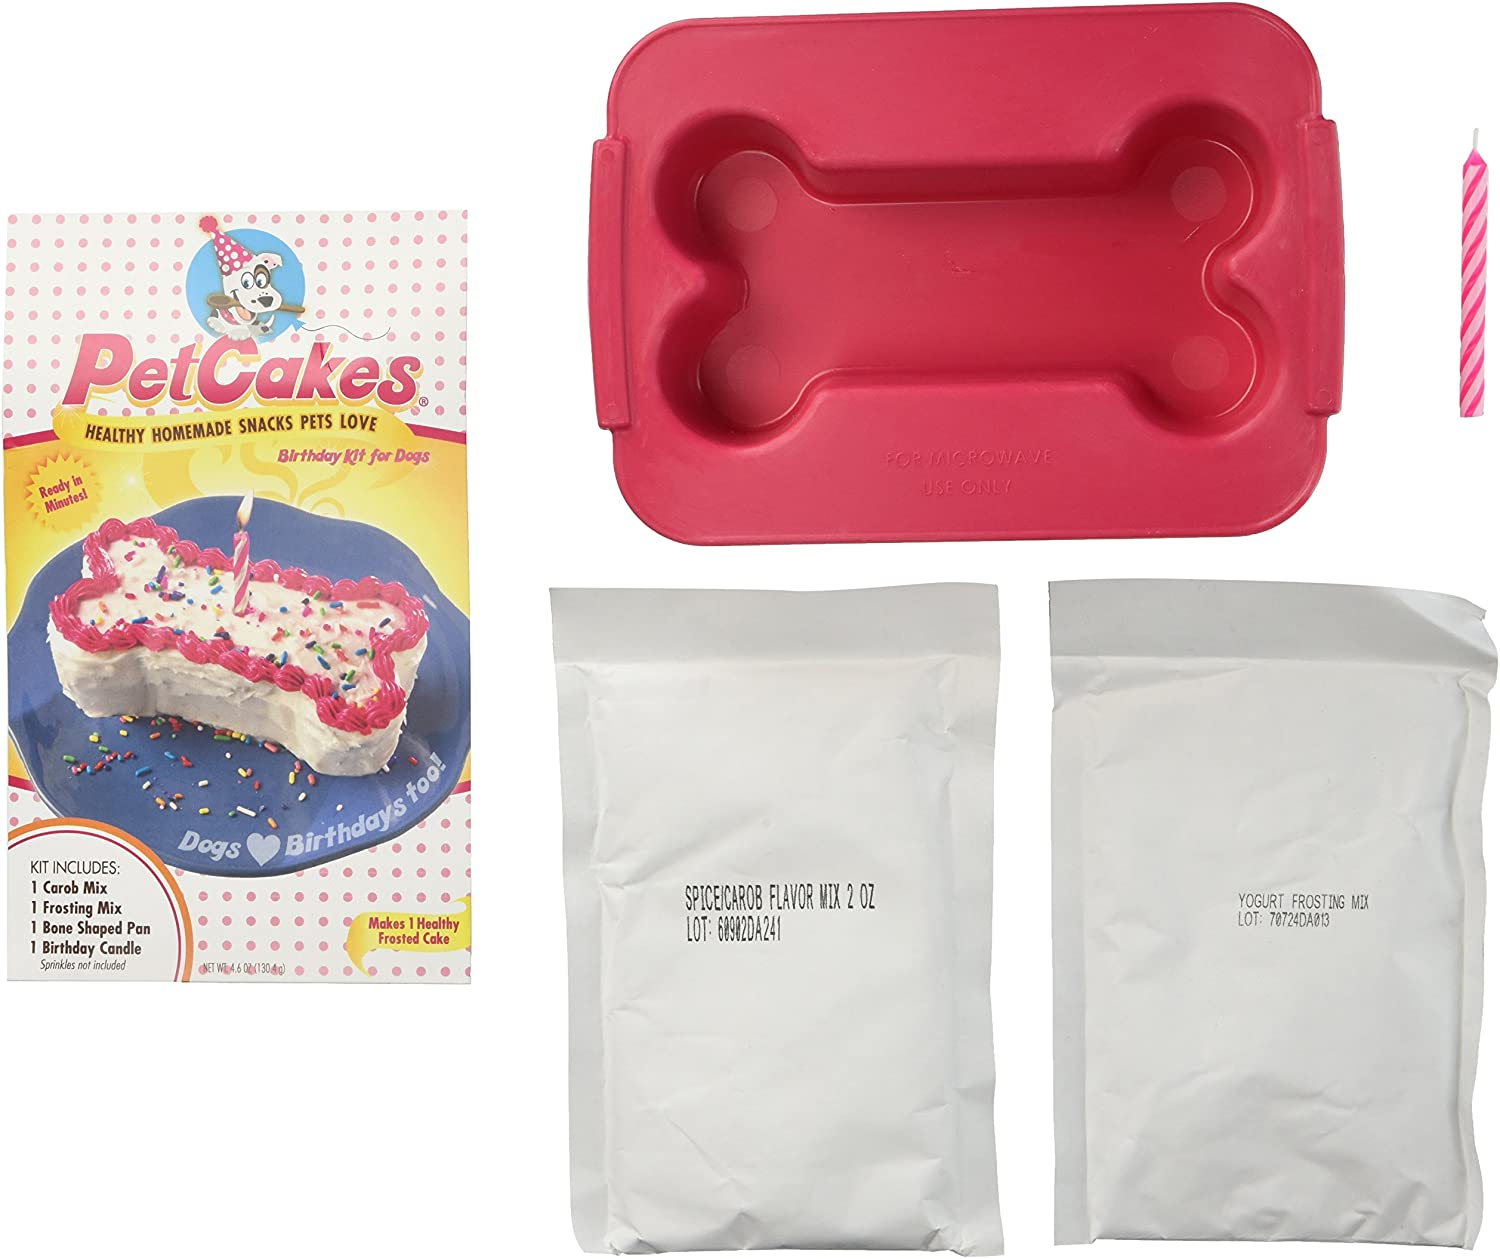 PetCakes Birthday Baltimore Deluxe Mall Cake for Dogs Kit